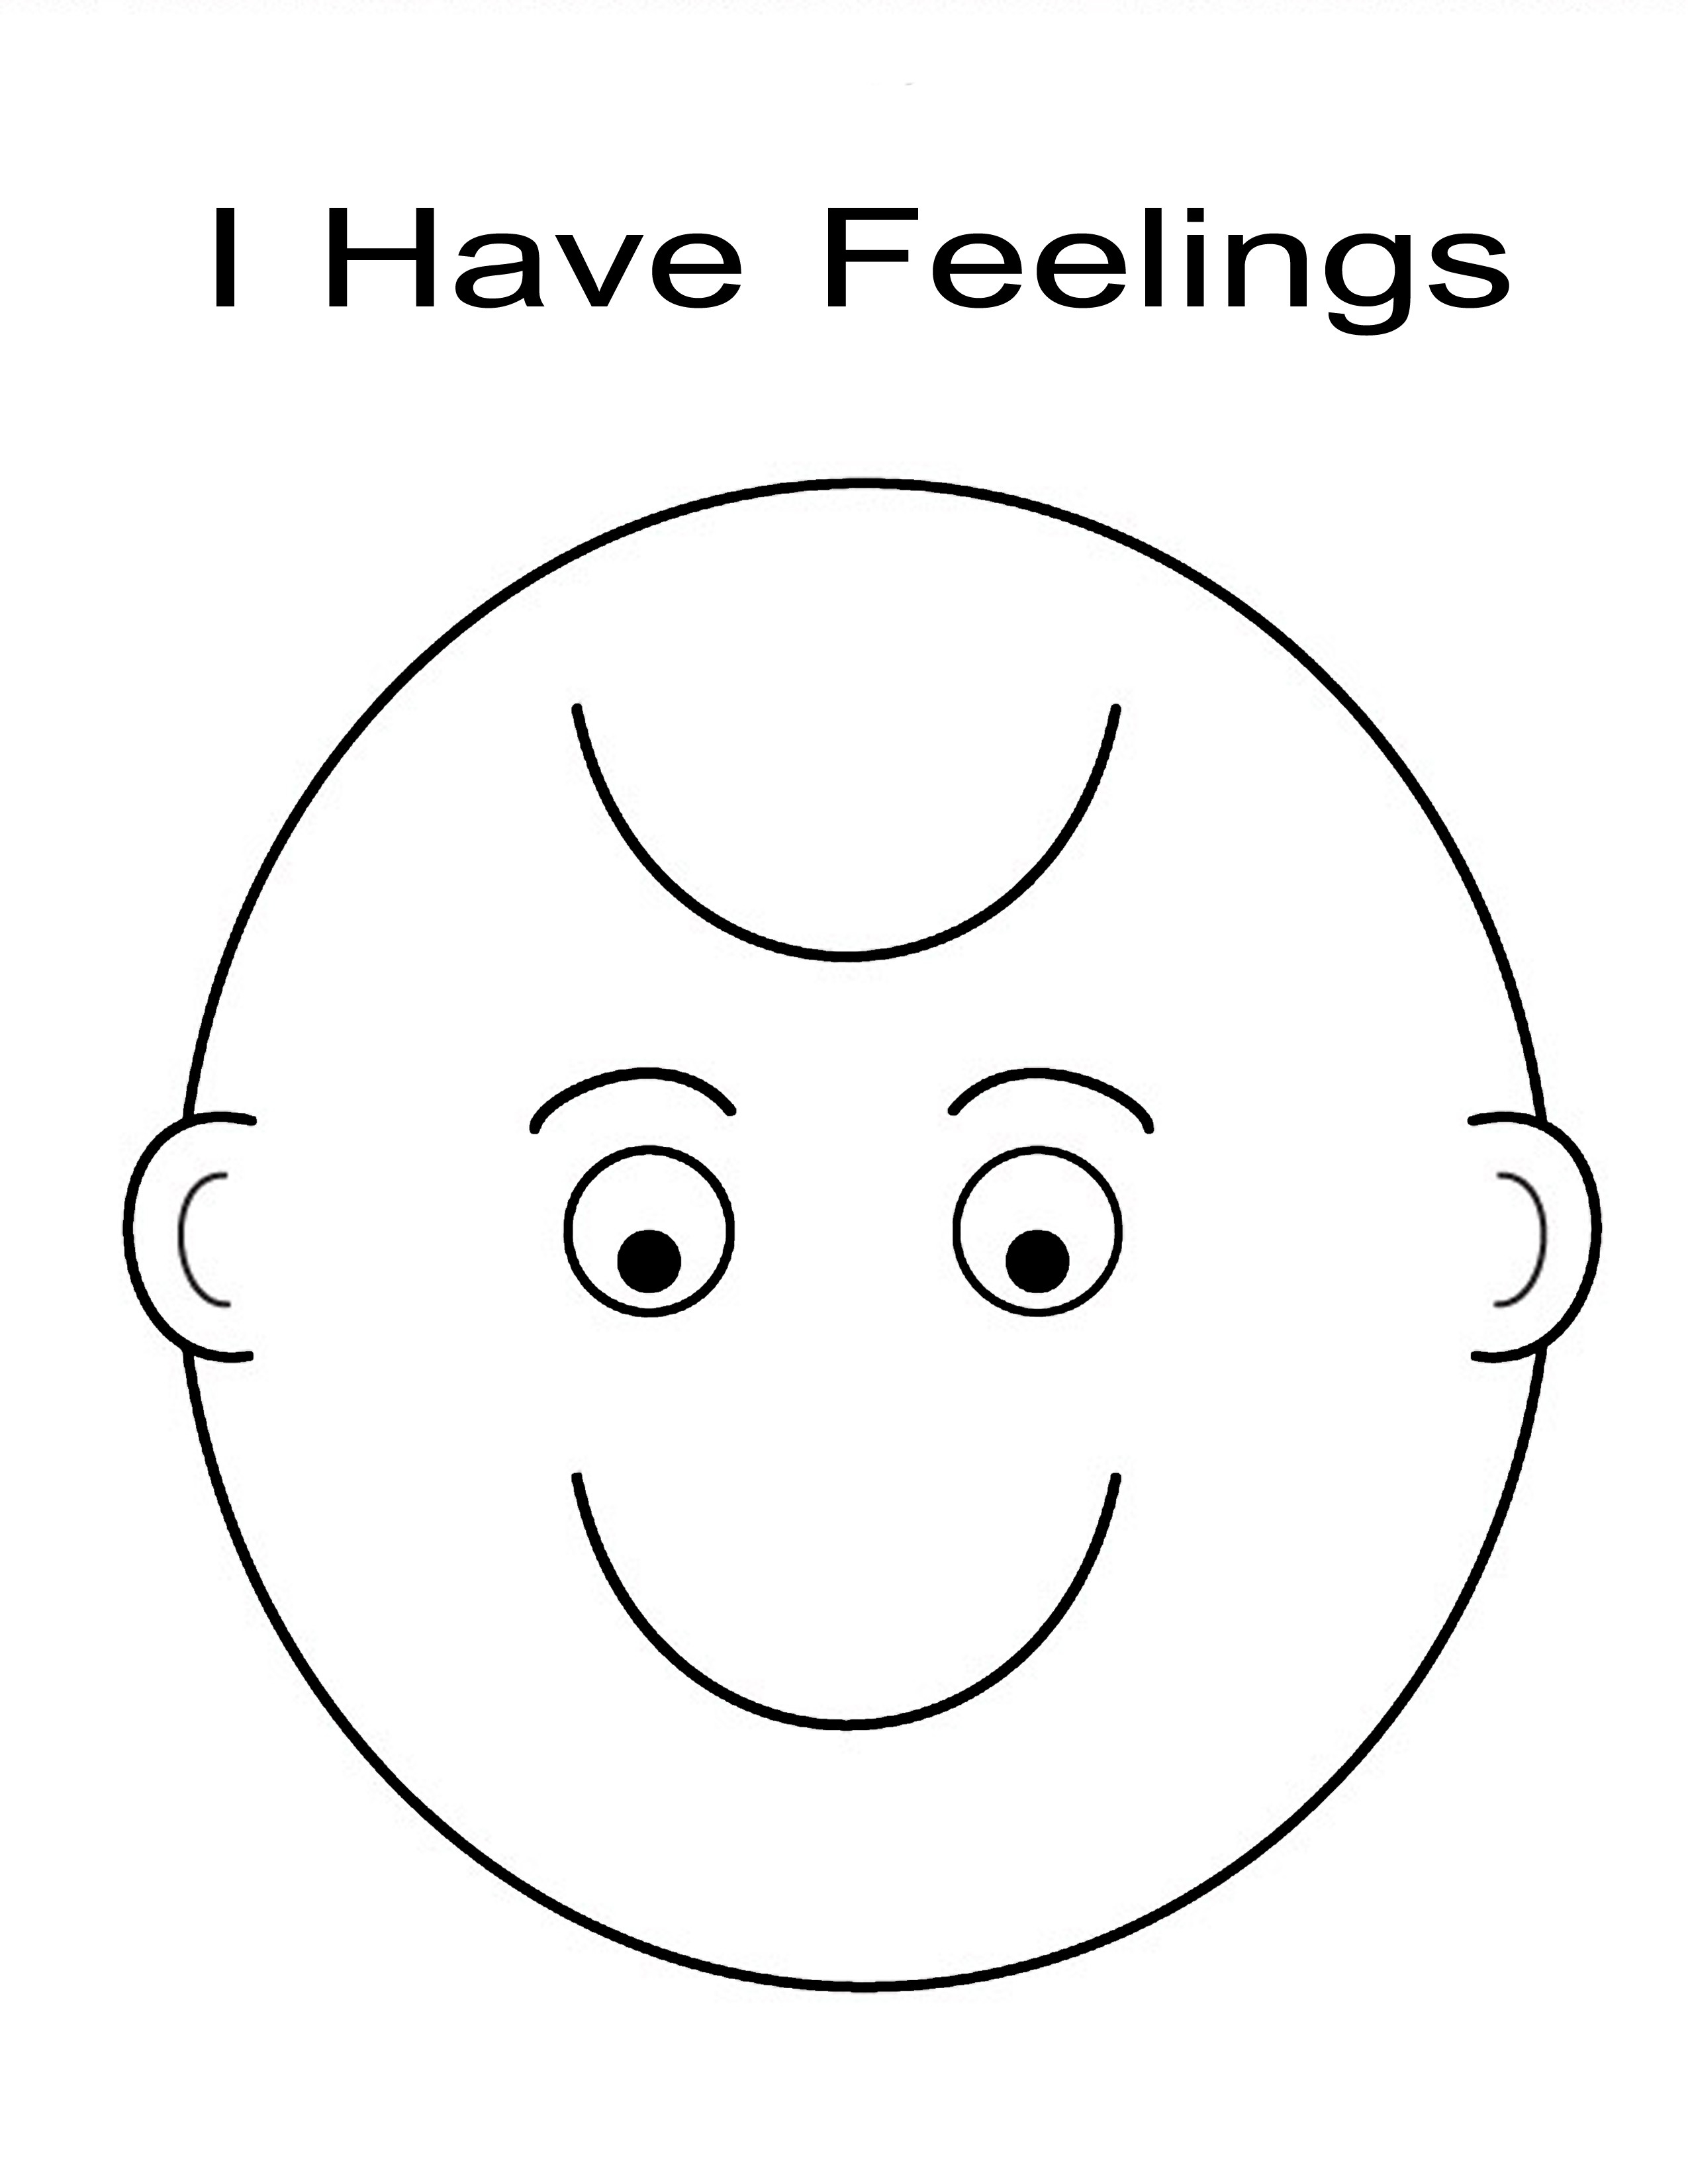 Feelings Coloring Pages for Preschoolers  Download 12a - Free For Children